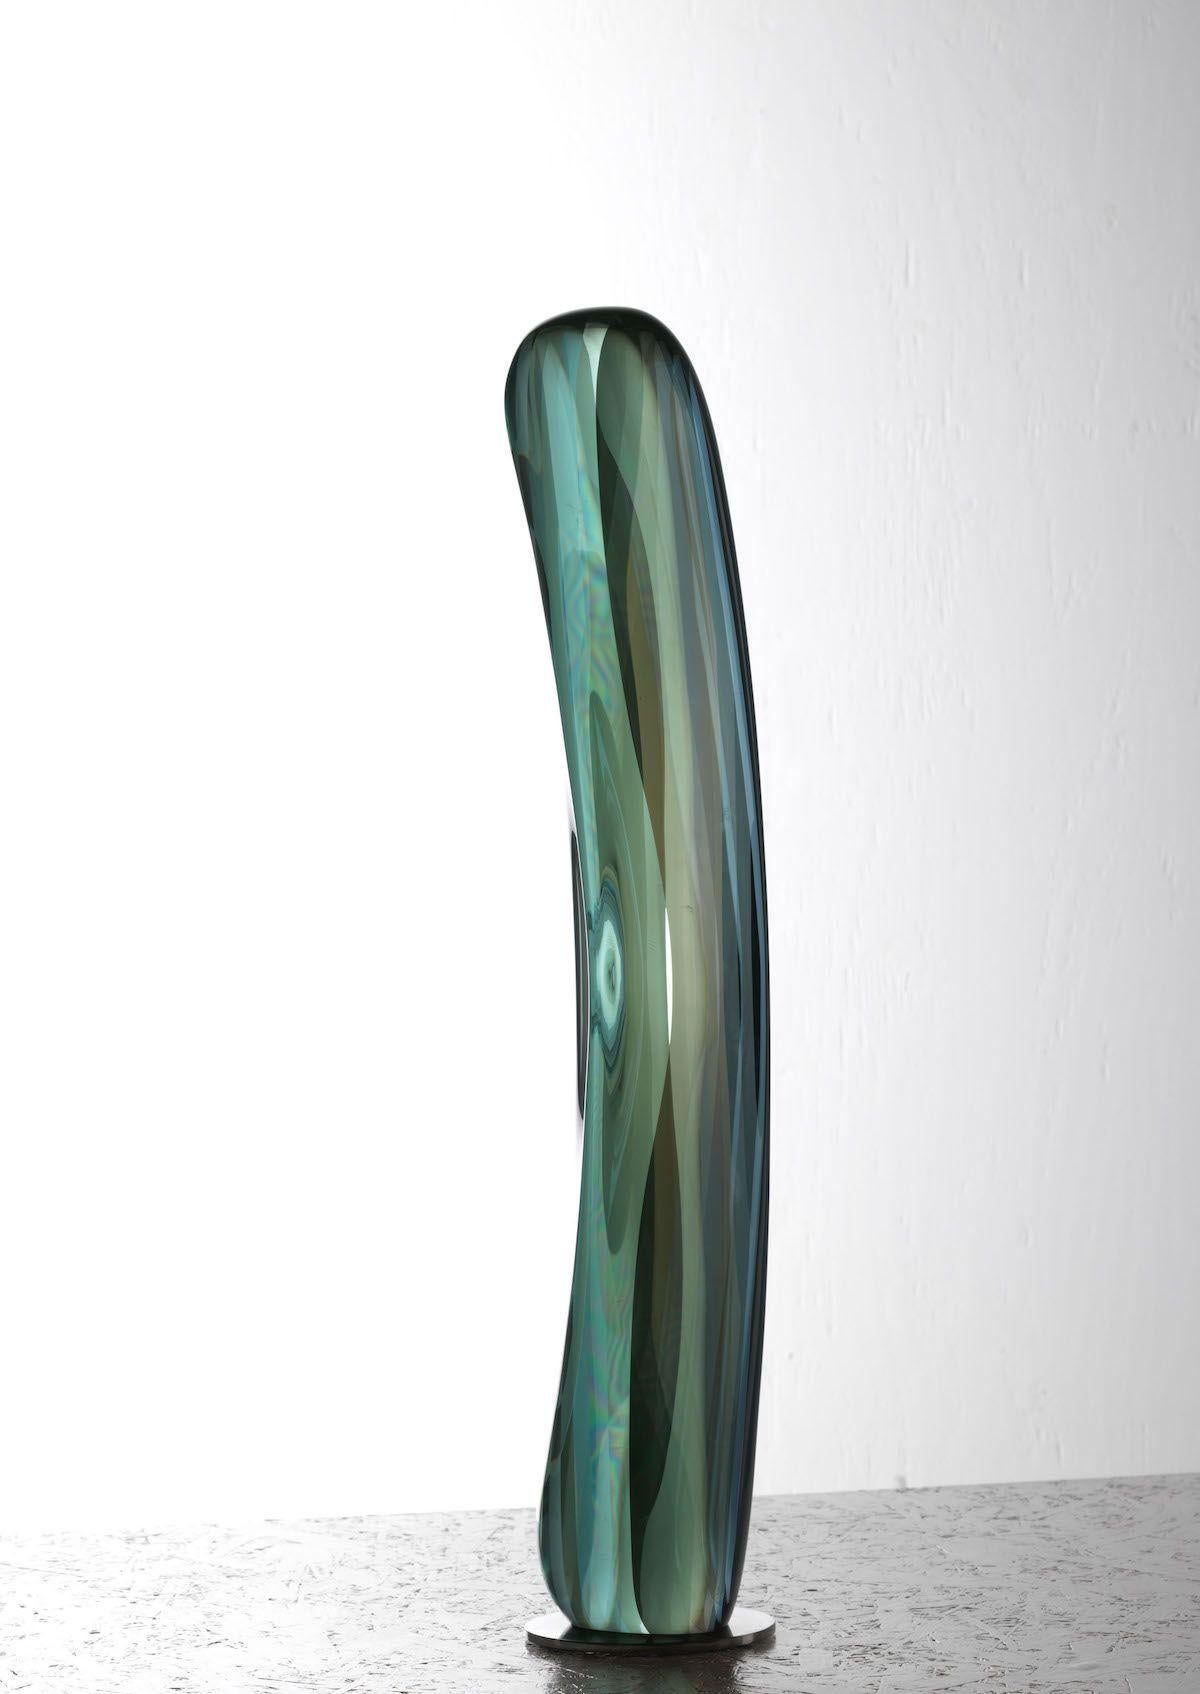 M.180205 by Toshio Iezumi - Glass, Vertical abstract sculpture